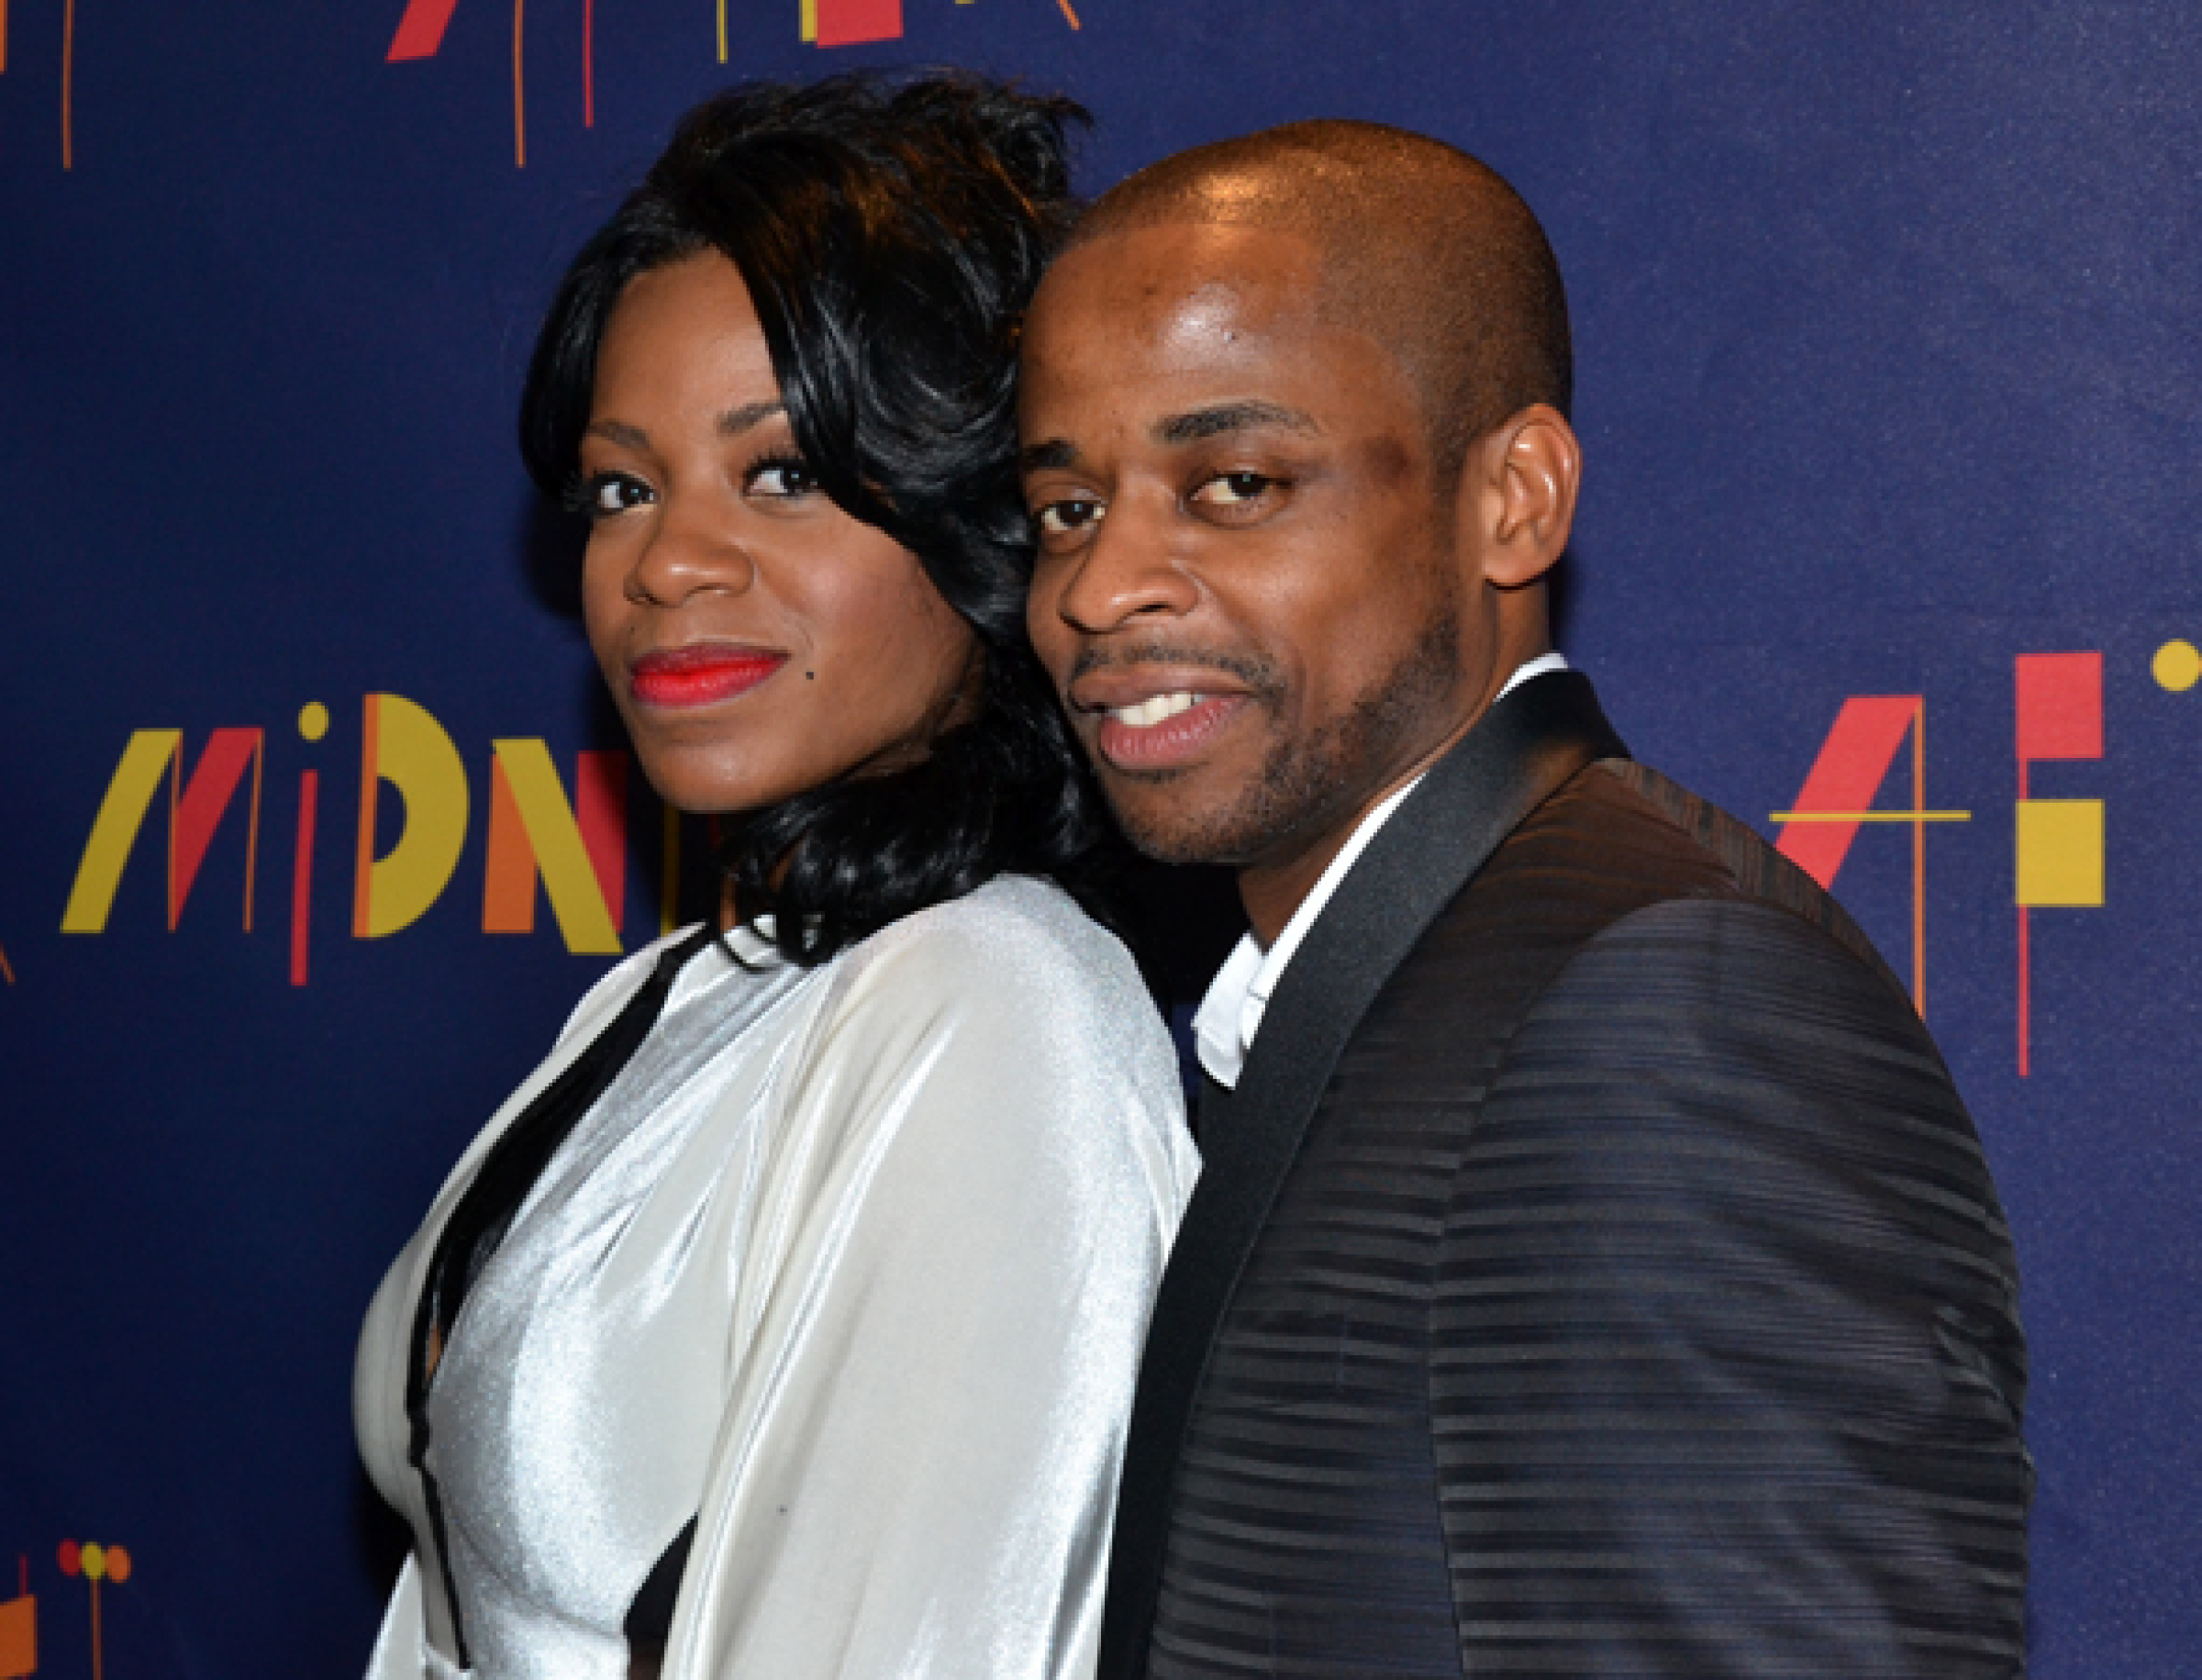 Dule hill and fantasia dating